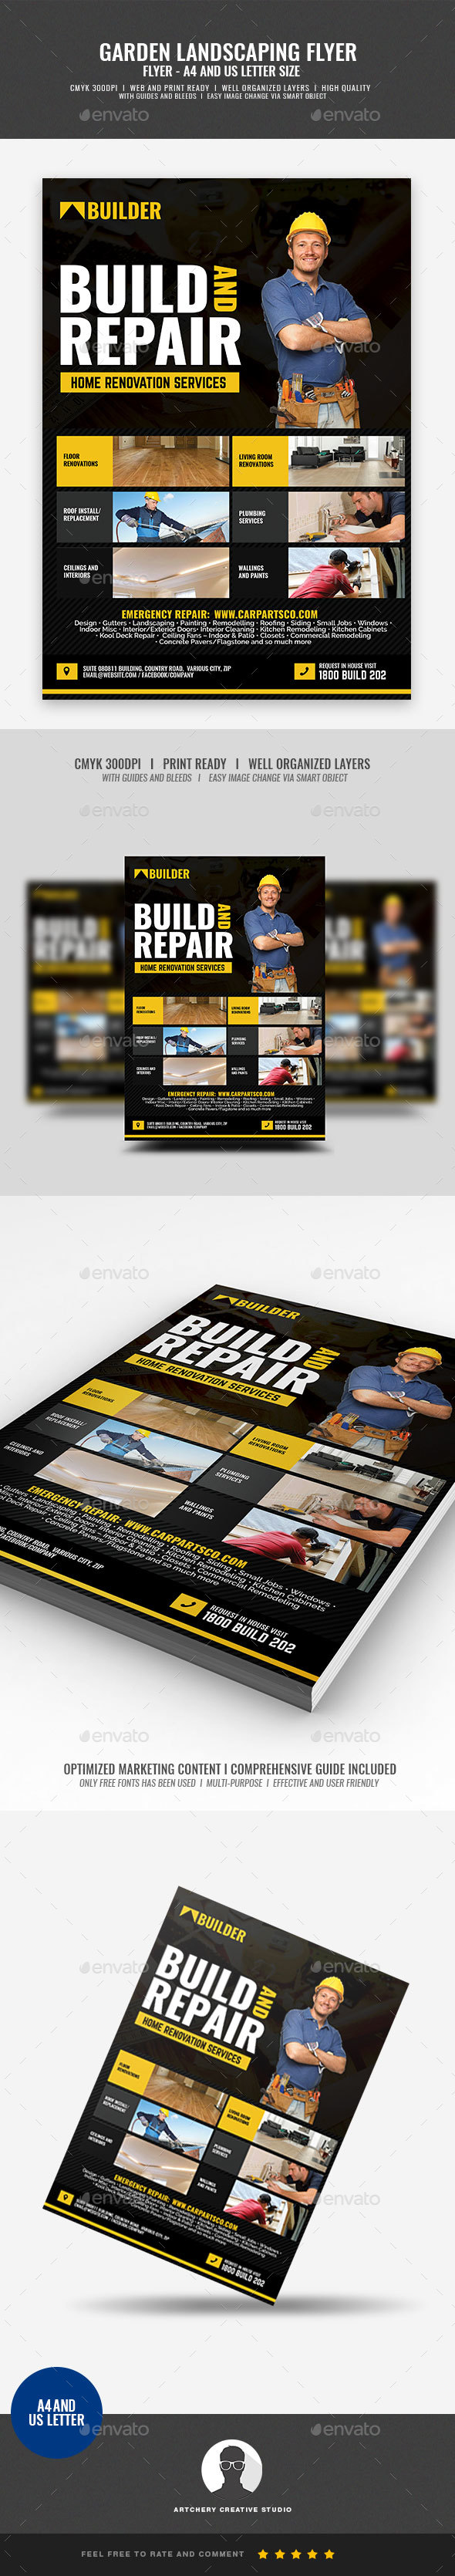 Construction and Renovation Services Flyer - Corporate Flyers